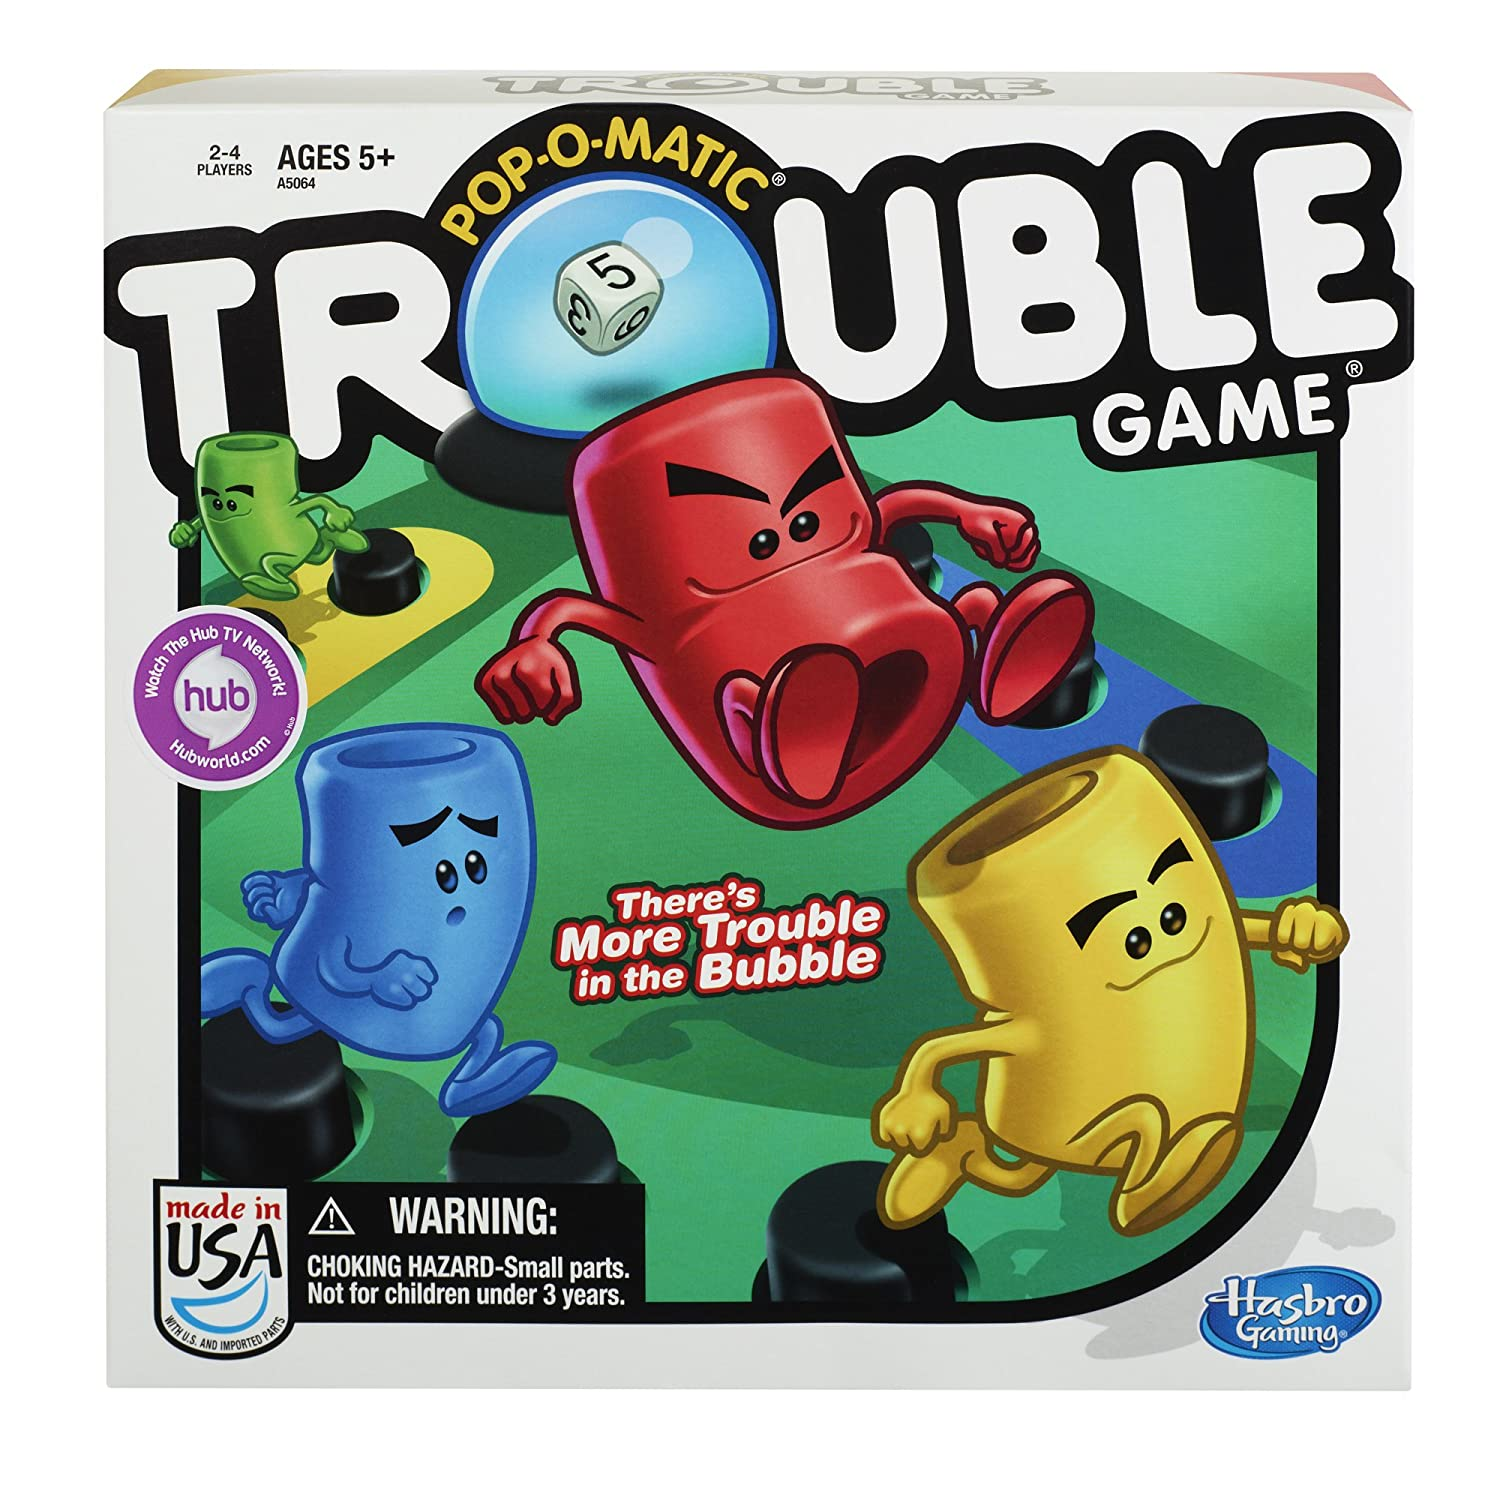 Amazon.com Trouble Game Toys